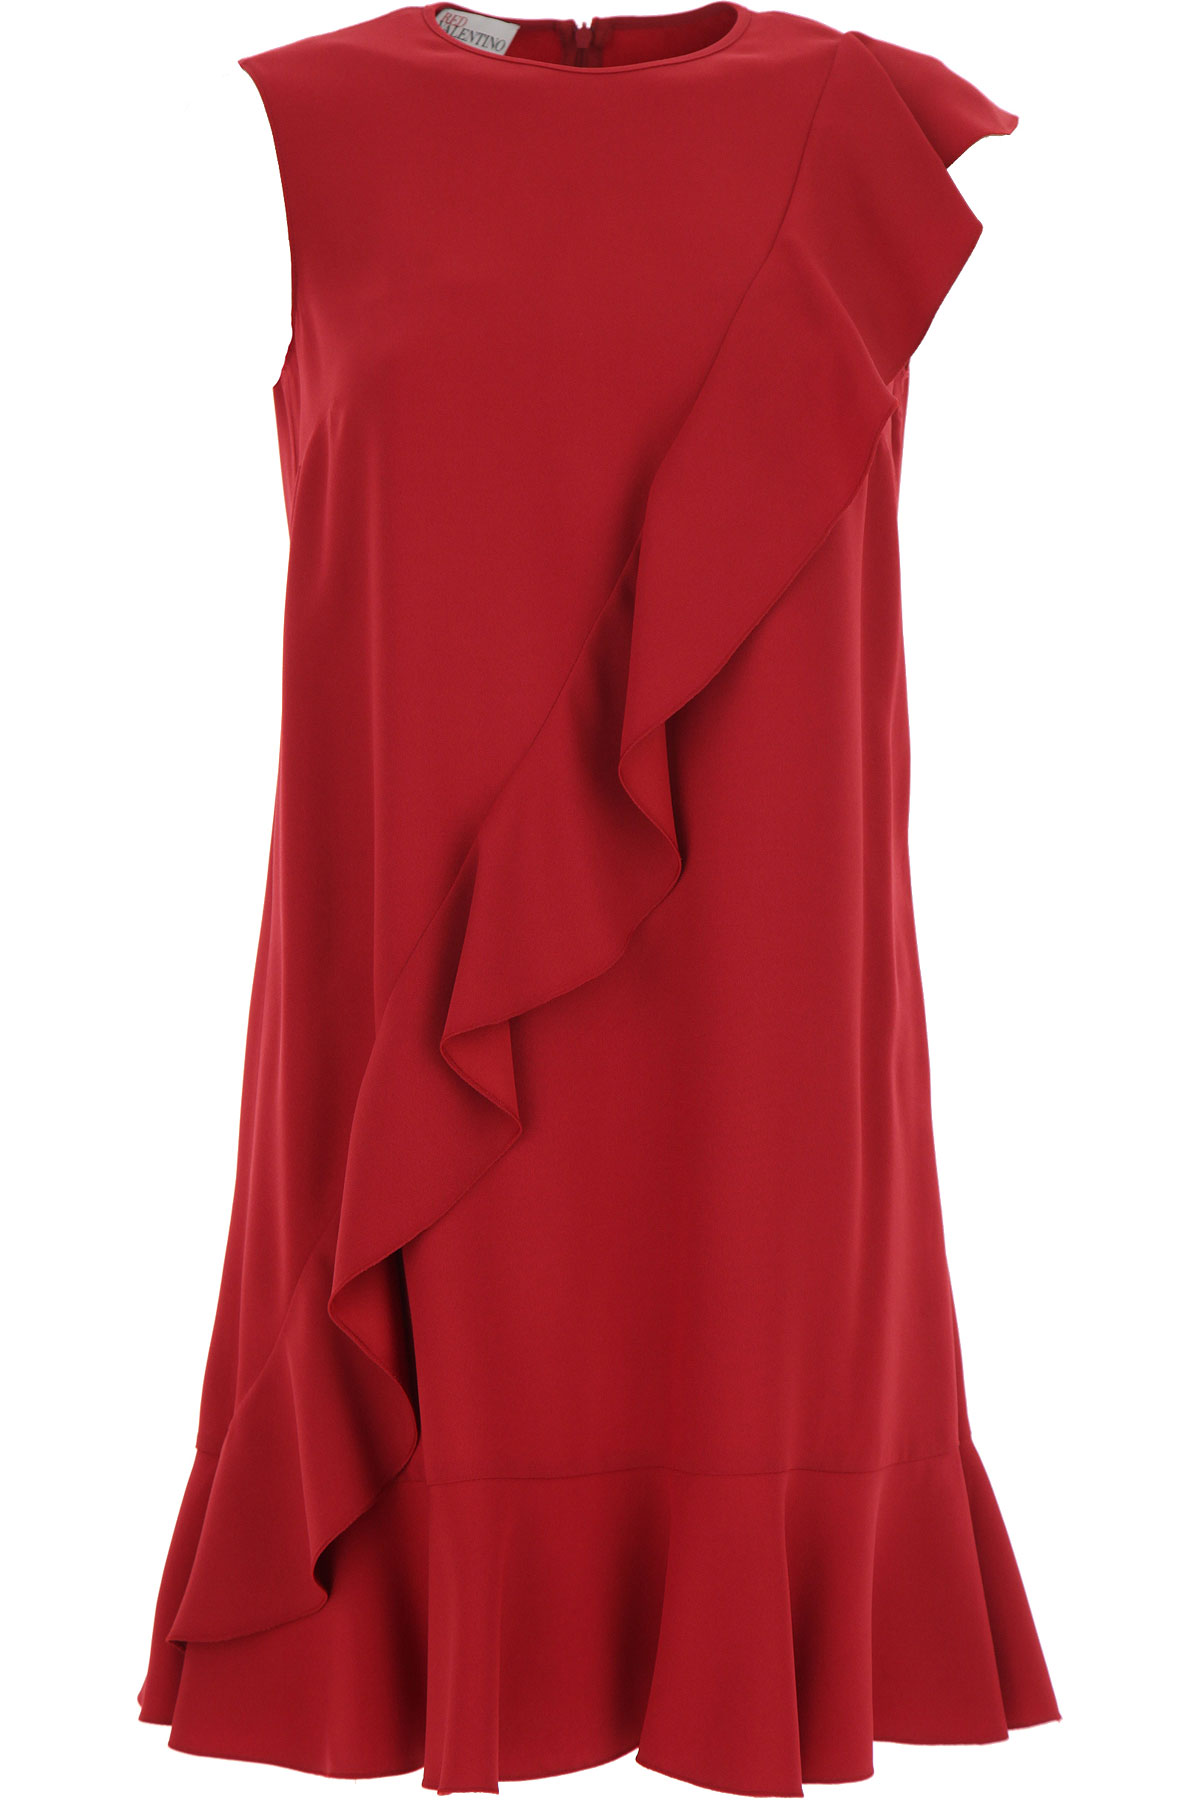 RED Valentino Dress for Women, Evening Cocktail Party On Sale, Currant, acetate, 2019, 10 4 8